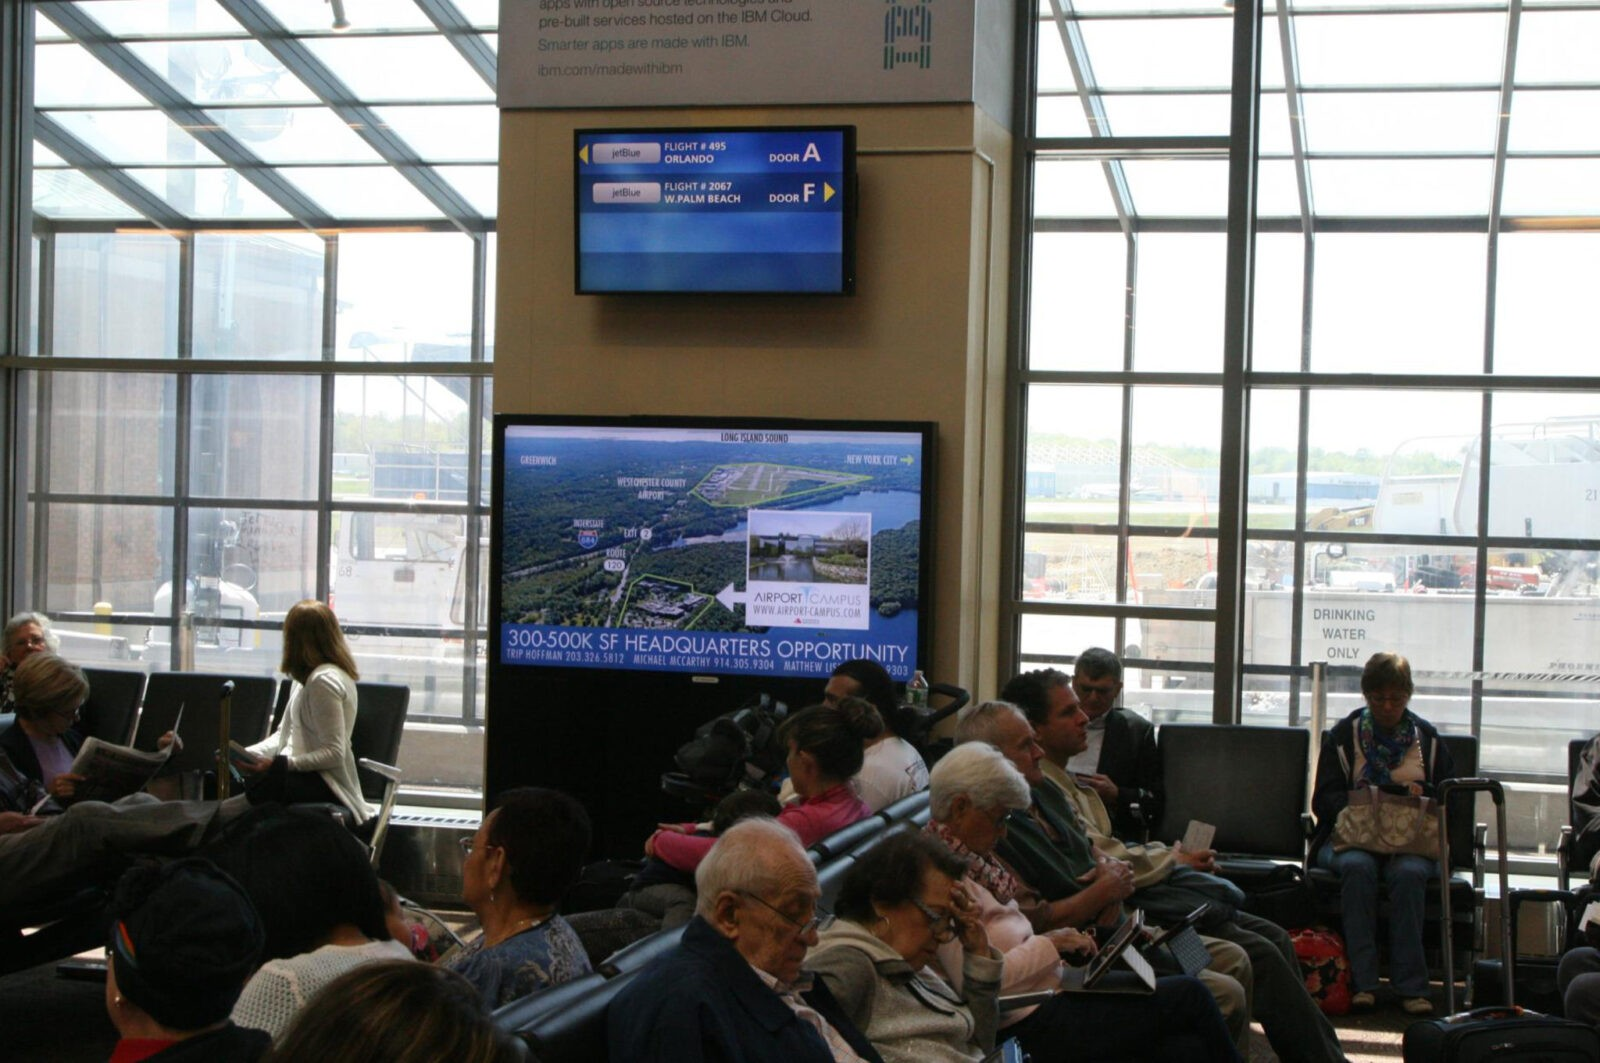 Airport HPN Digital Screen Displays_RoeCo_Gate Hold Area